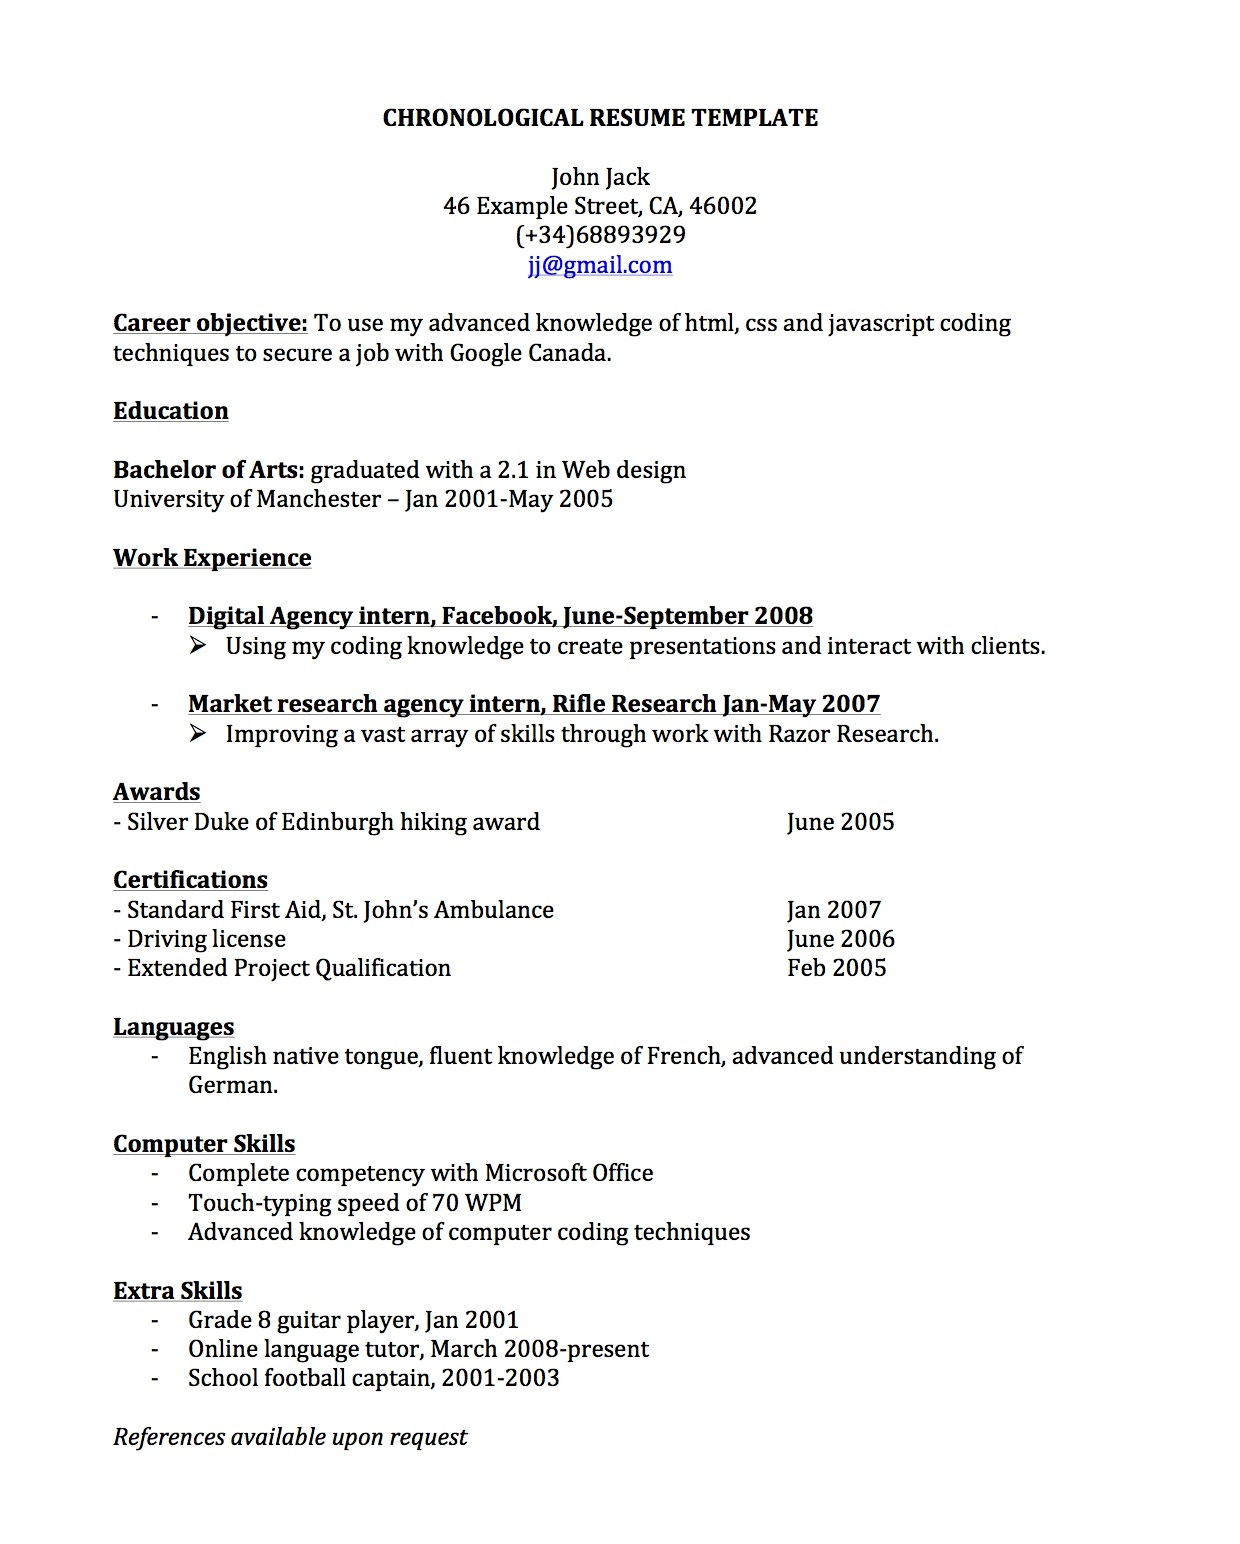 private english teacher resume create professional resumes private english teacher resume english teacher resume sample of english teacher resume resume example chronological